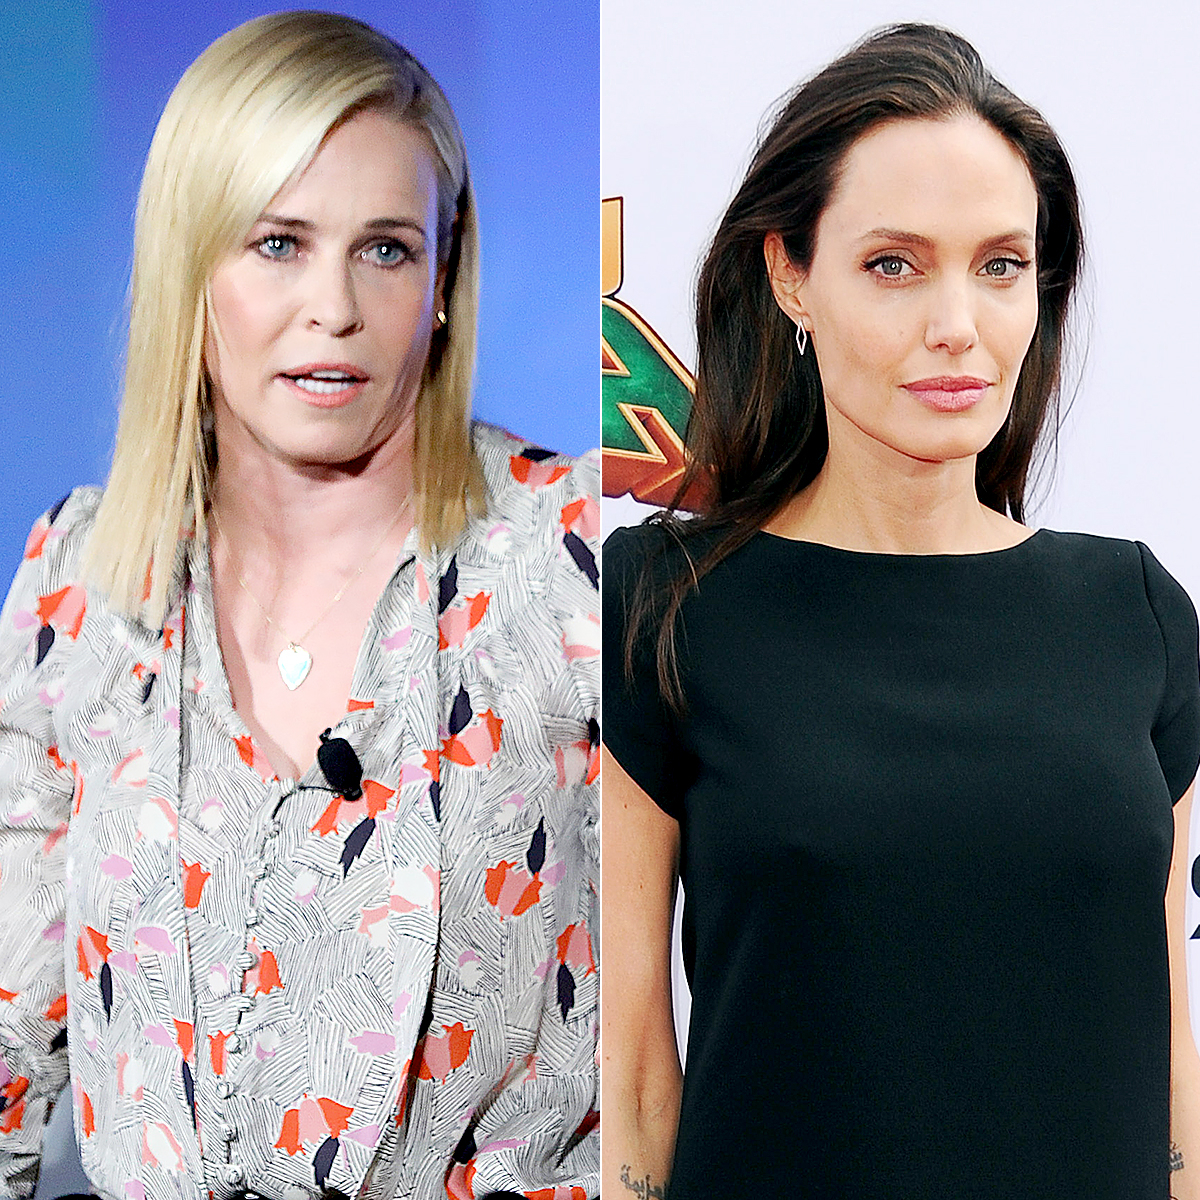 Chelsea Handler and Angelina Jolie